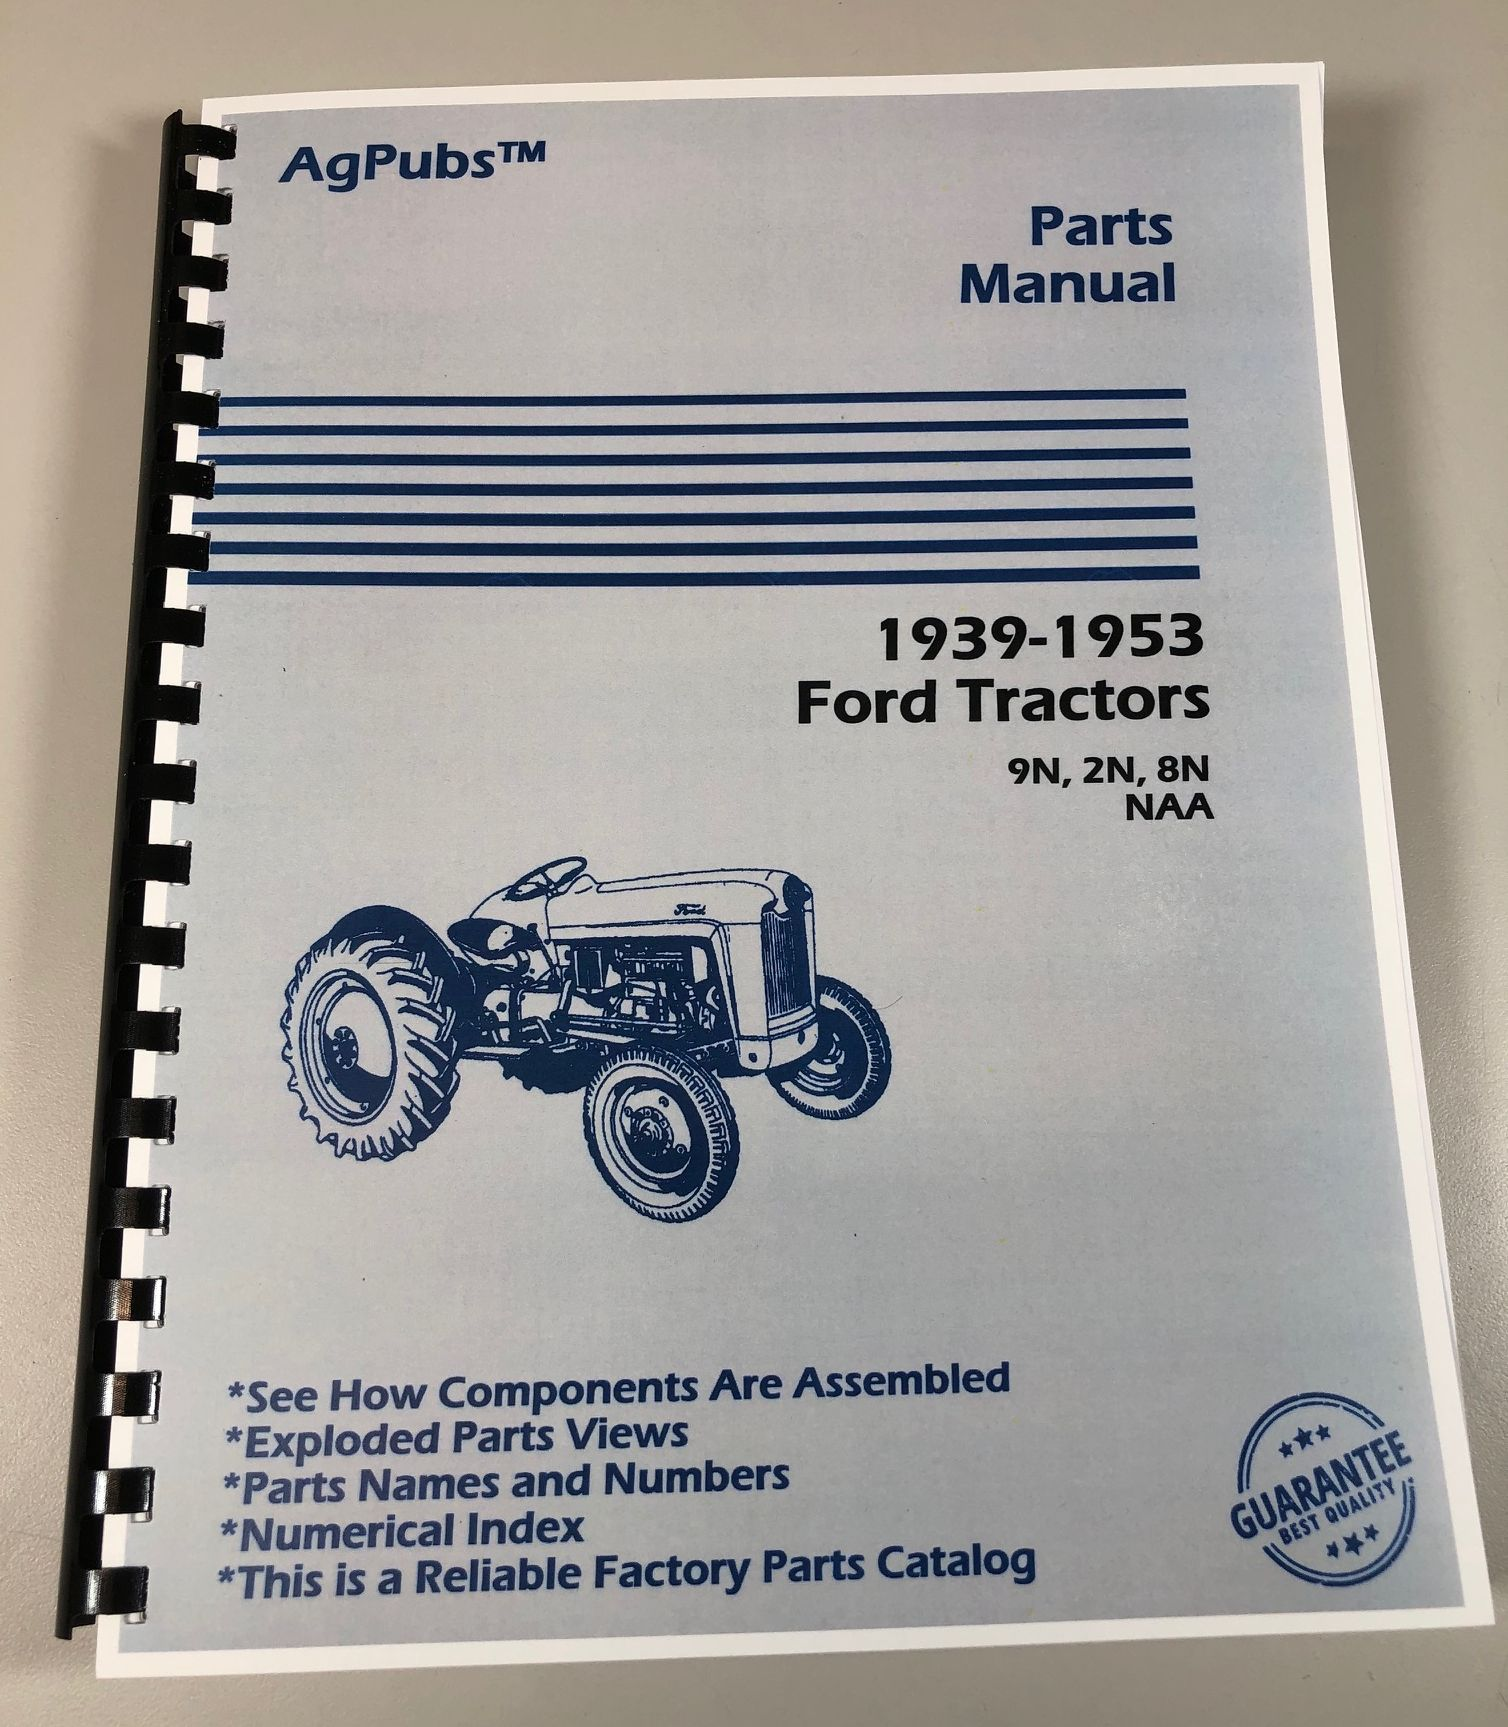 AgPubs Parts Manual for Ford 2N 8N 9N NAA Tractors 1939-1953 on